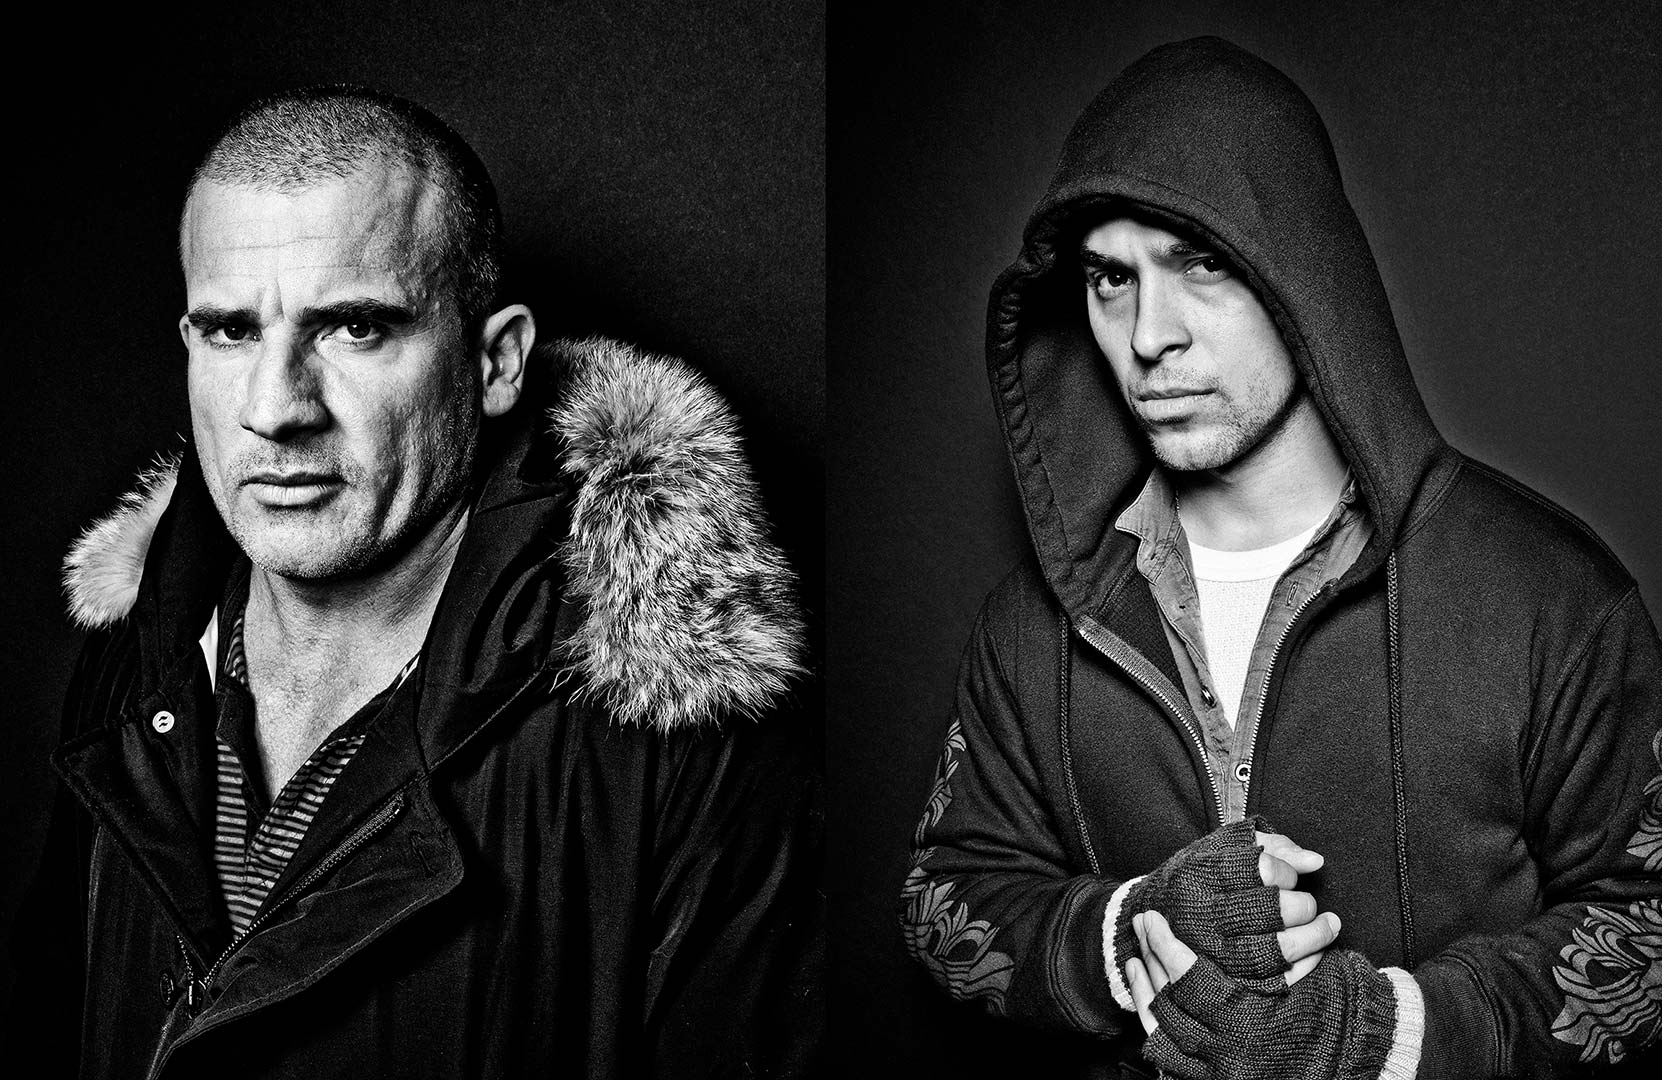 black & white portrait photography of actors Dominick Purcell and Wilmer Valderama